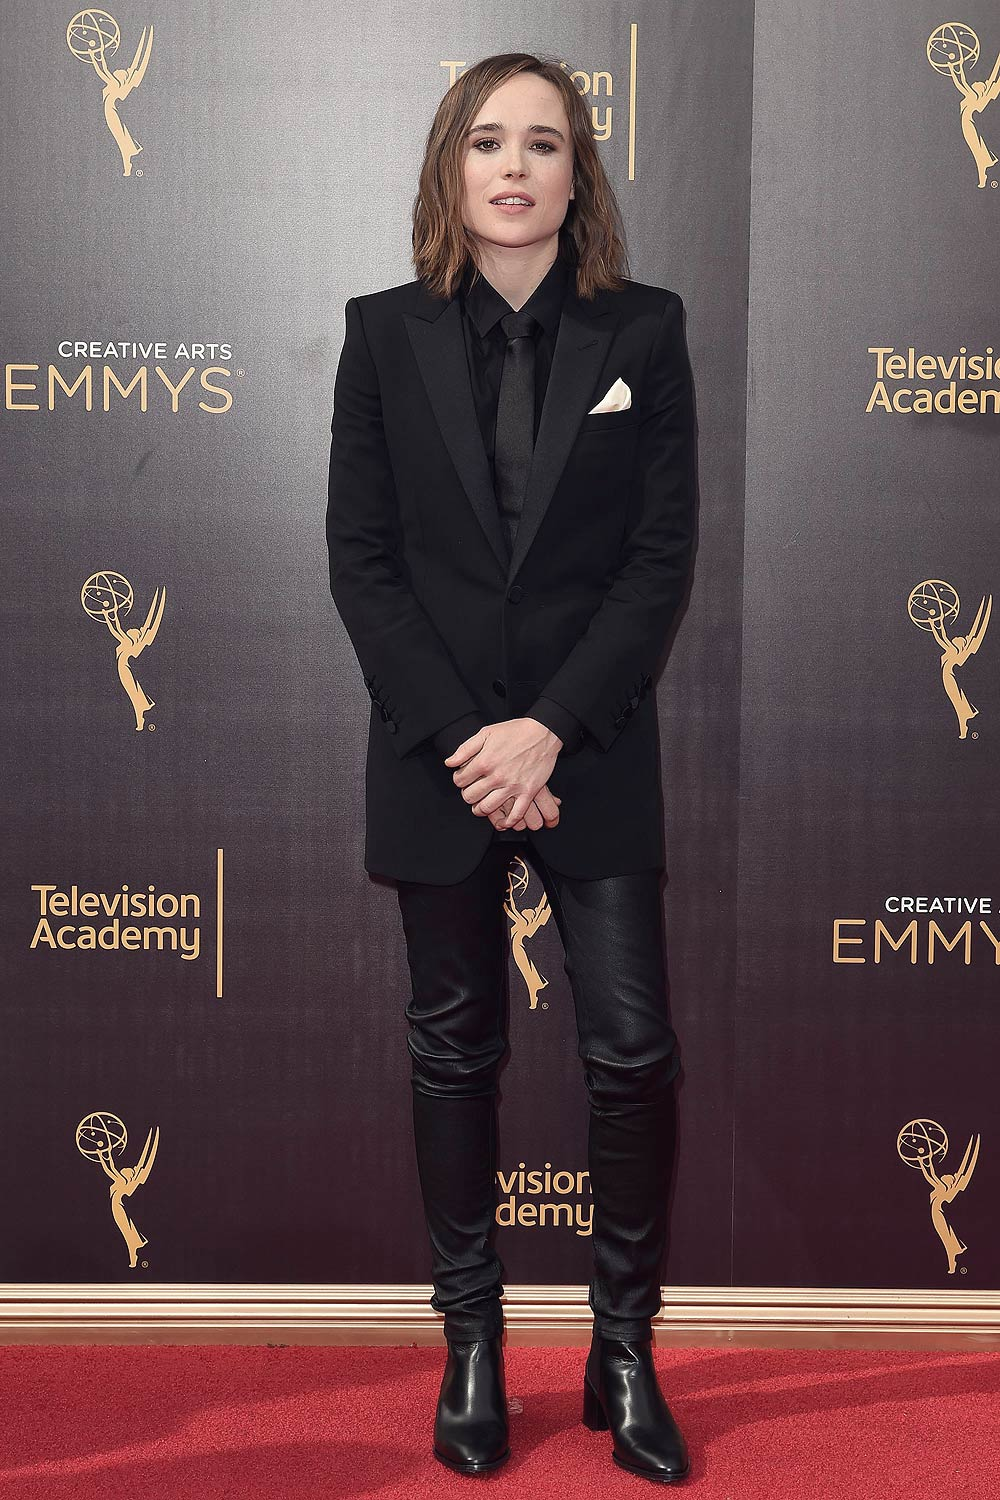 Ellen Page Emmy awards - Ellen Page Net Worth, Movies, Biography, Private Life, Pictures and Wallpapers